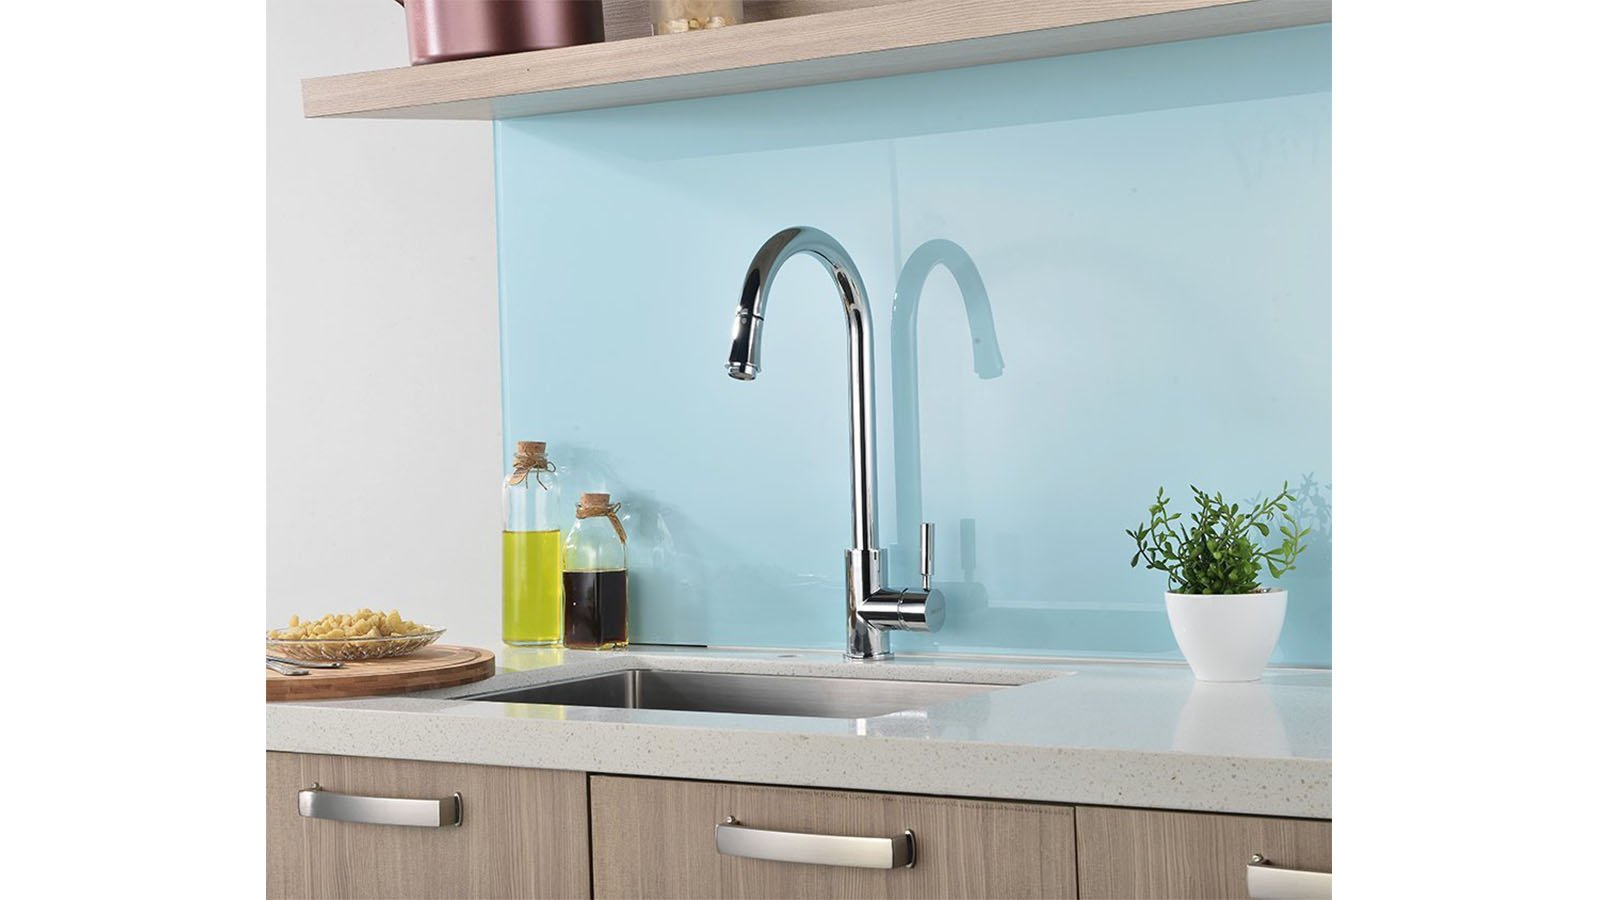 Best Kitchen Taps: The 9 BEST Kitchen Taps & Mixers of 2018